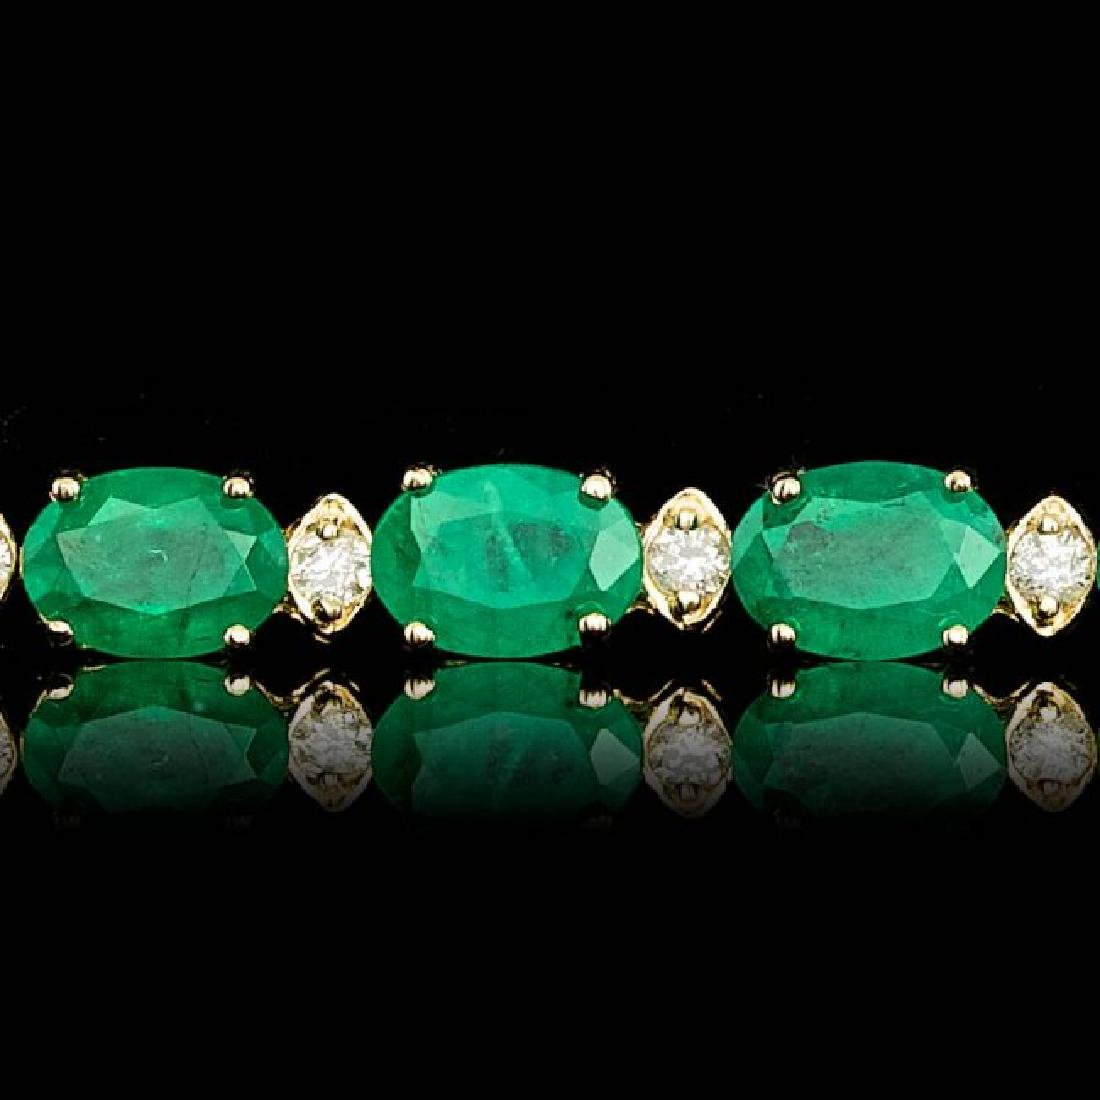 14k Gold 14.00ct Emerald 1.00ct Diamond Bracelet - 4